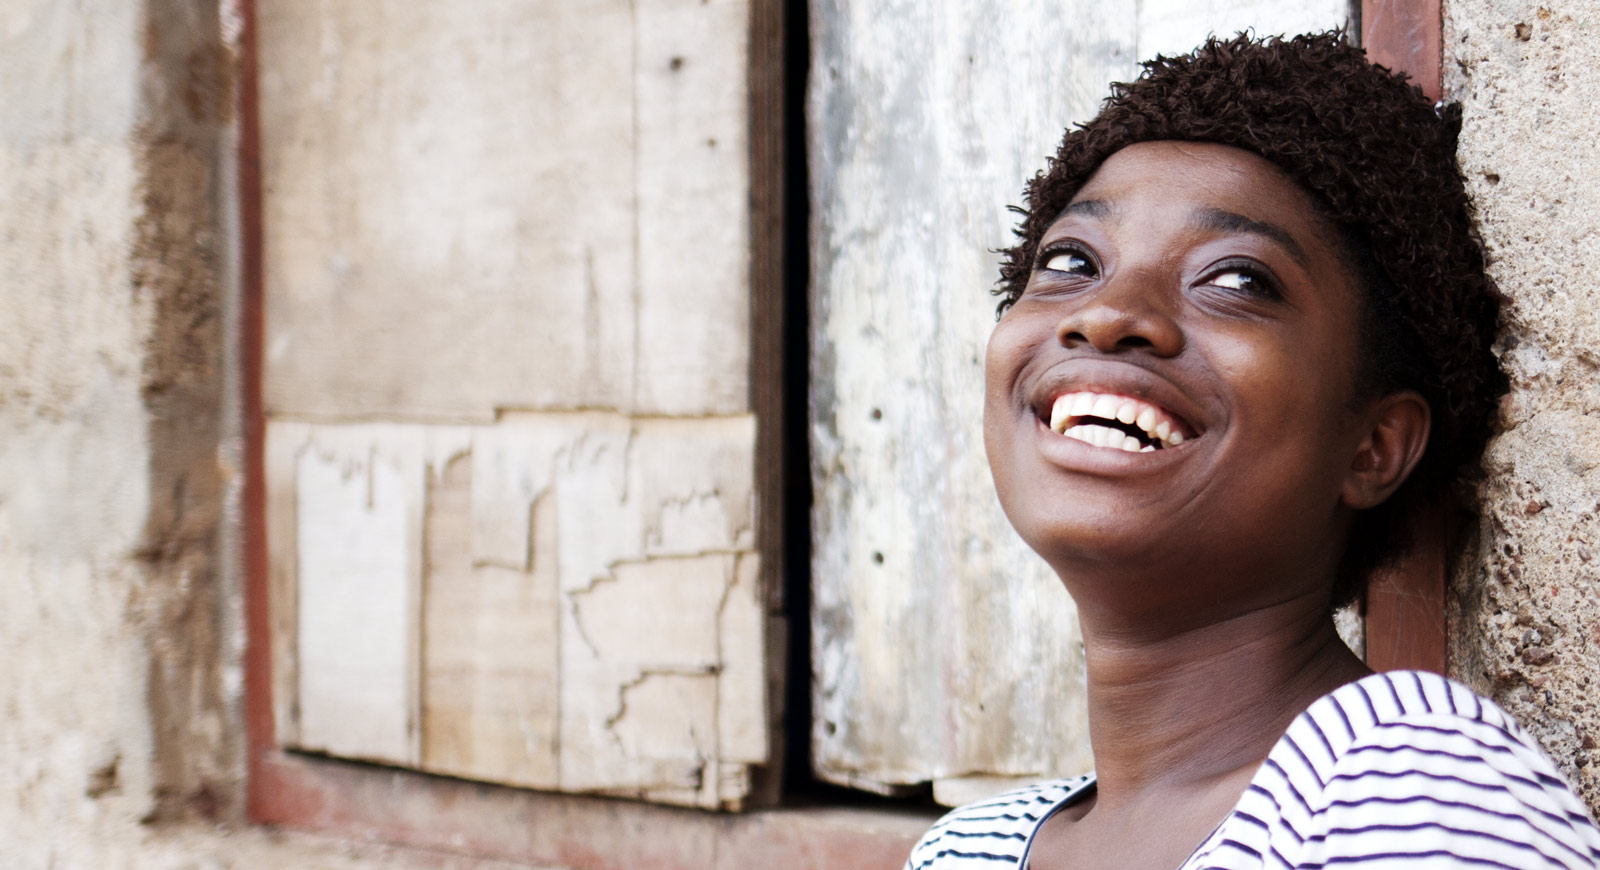 Introducing Project : One Girl Uganda